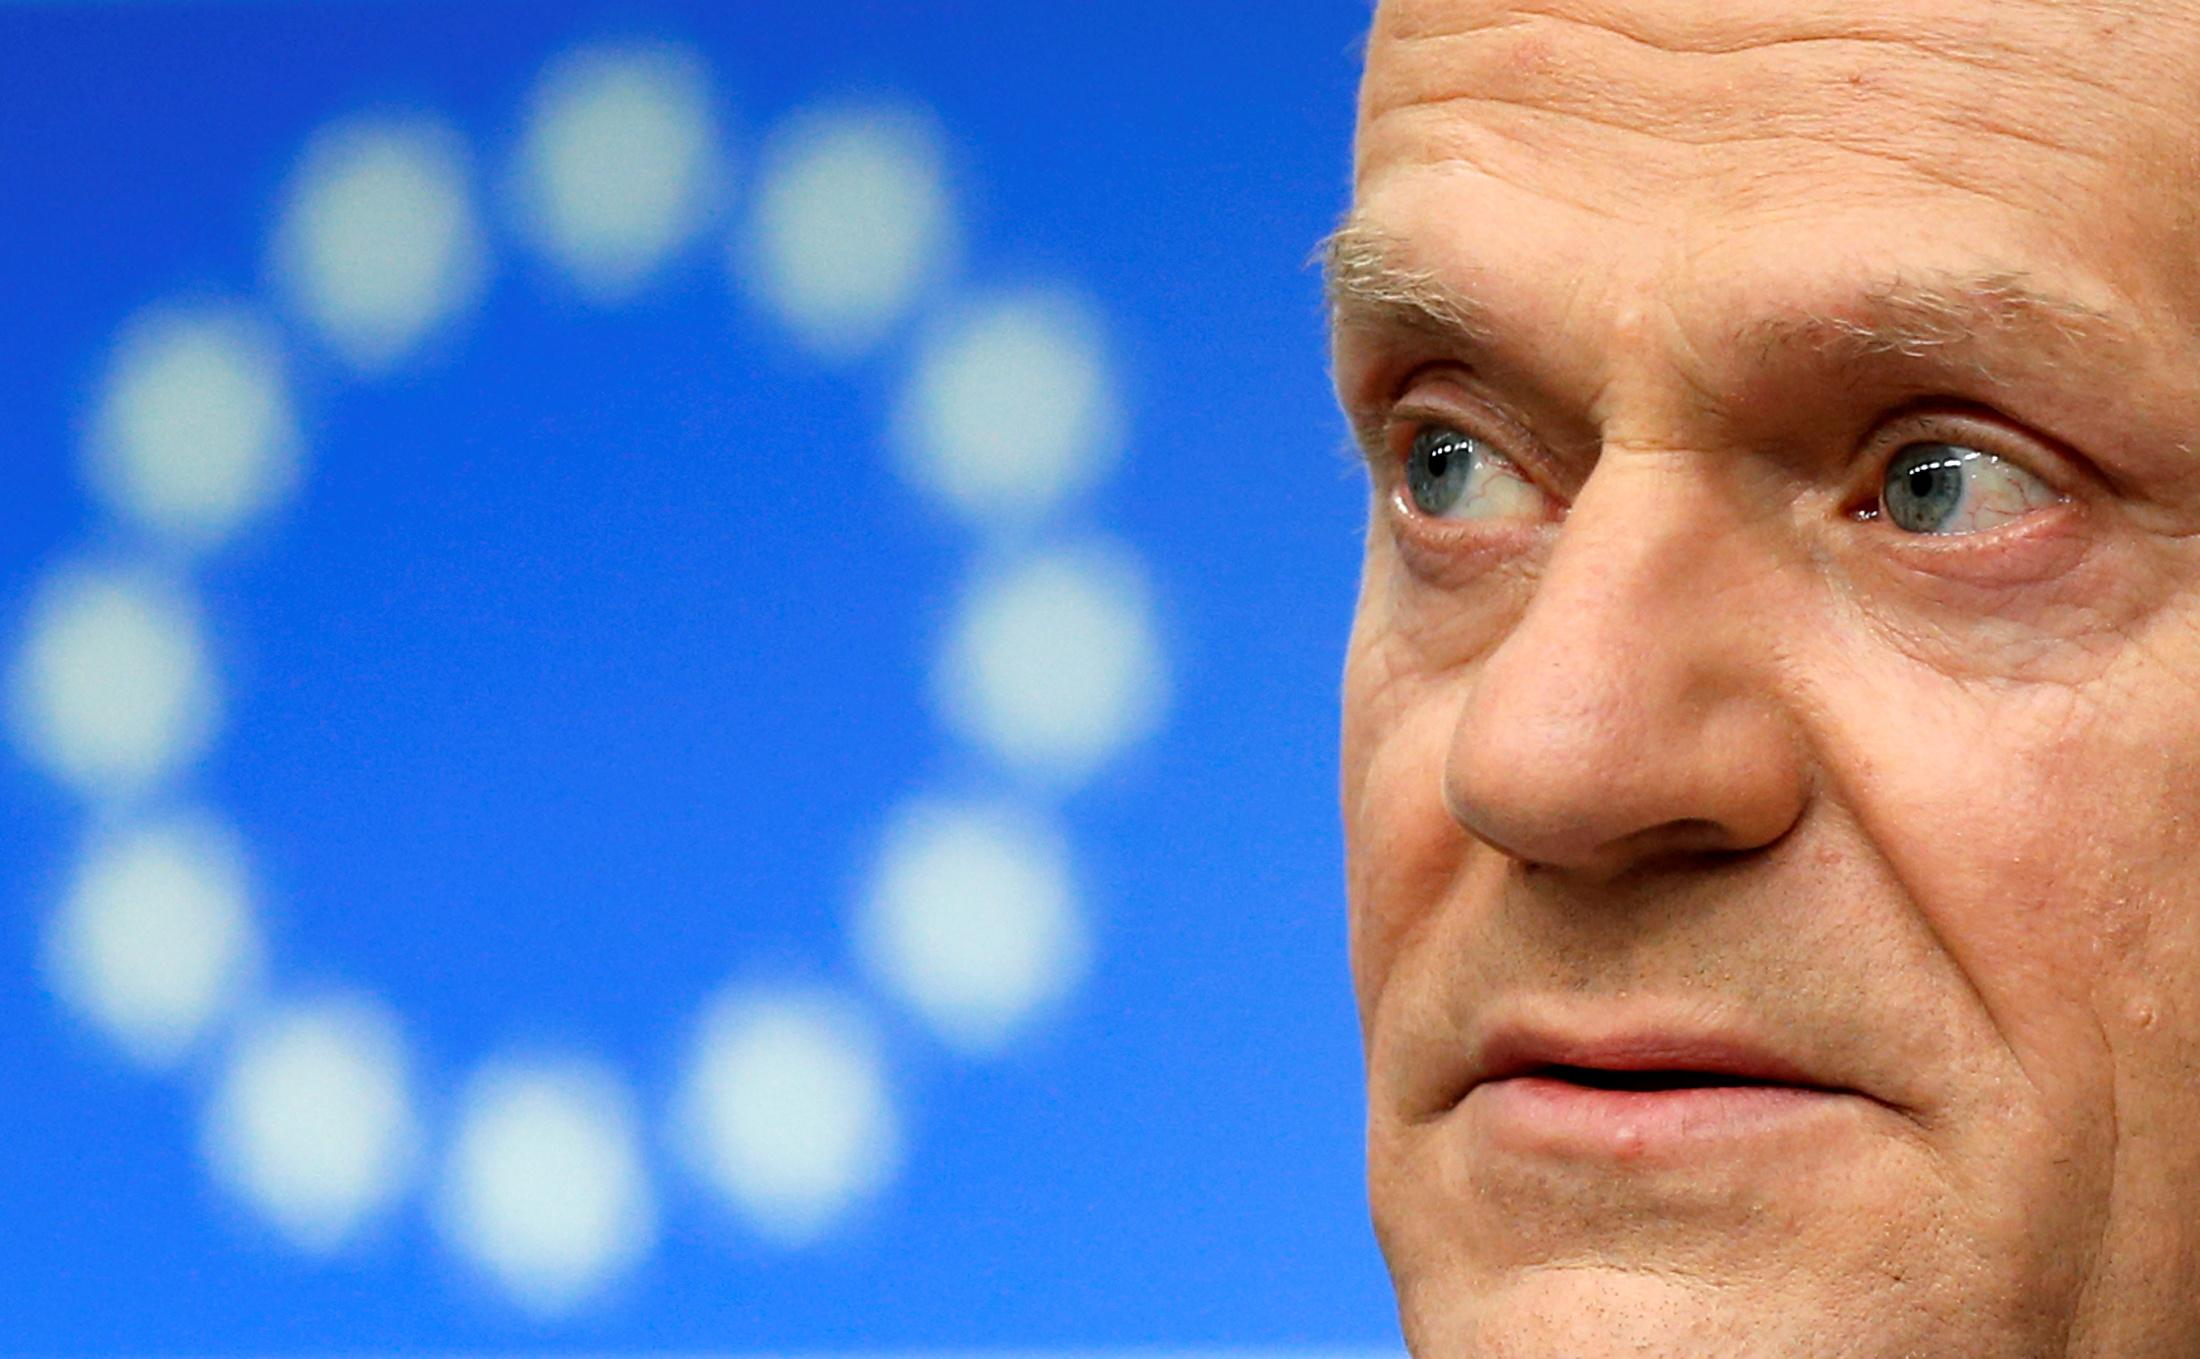 EU leaders agree to spend more on migration, defence, security